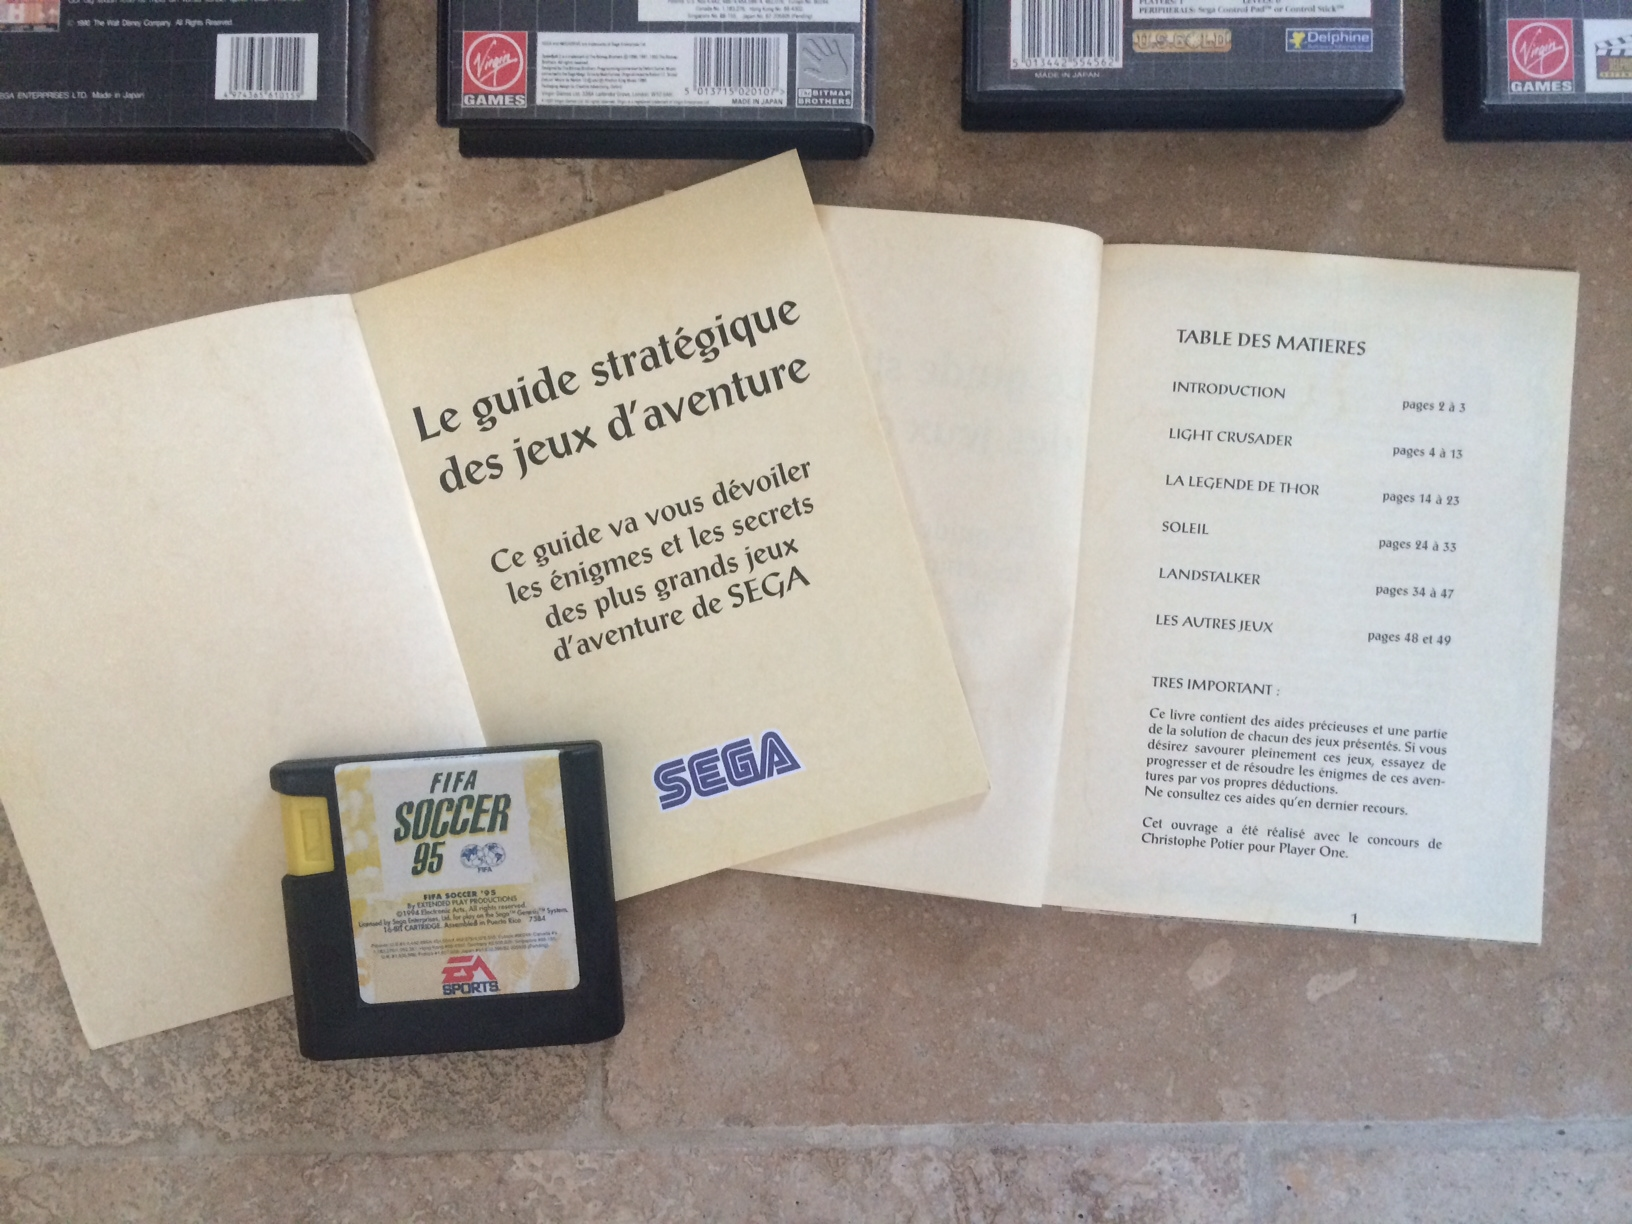 [VDS] lot de jeux megadrive pal  - a supprimer - nouv topic en cours 404178photo28